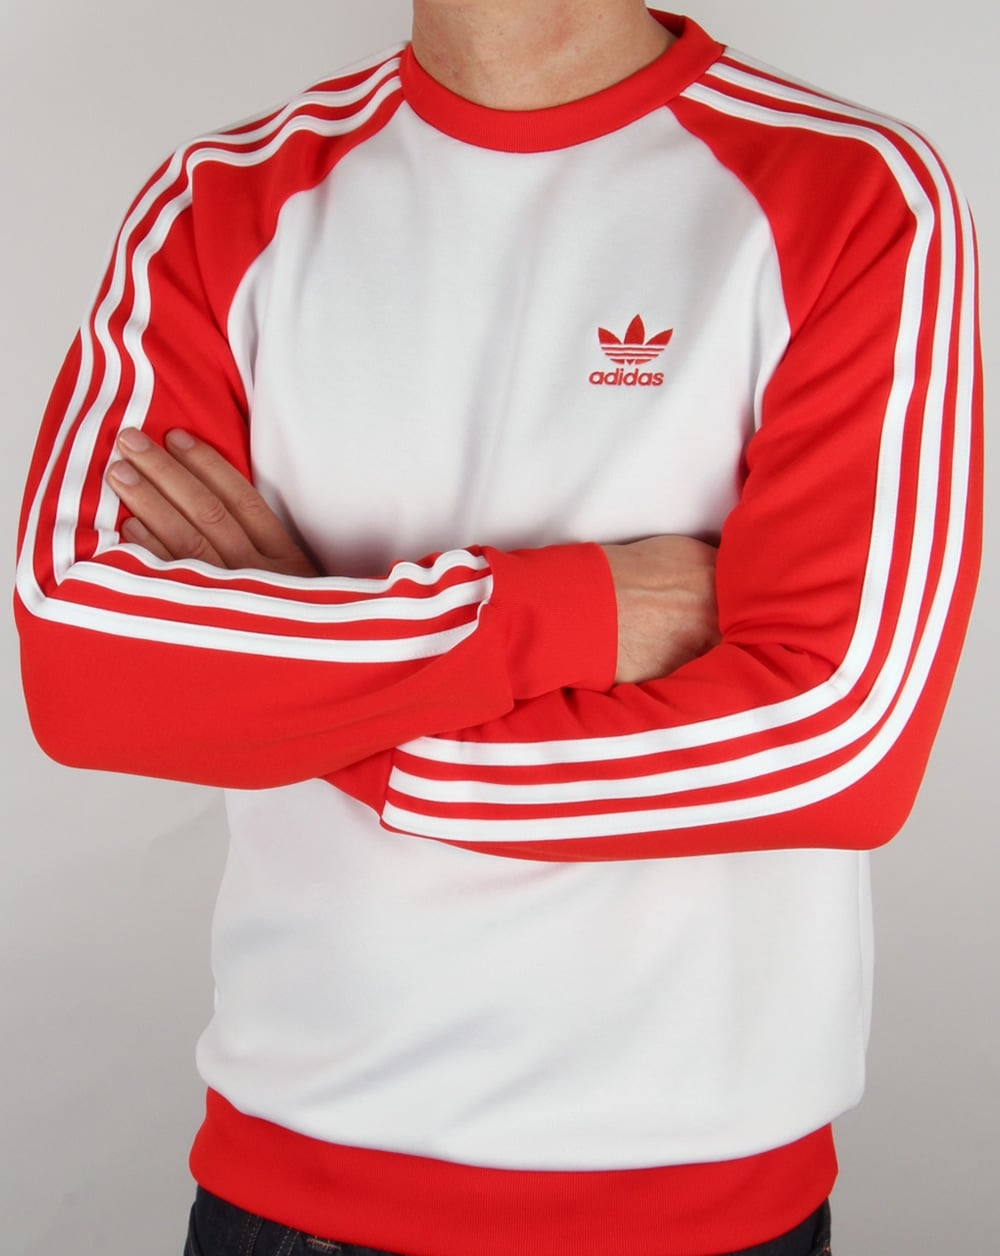 adidas classic sweat retro